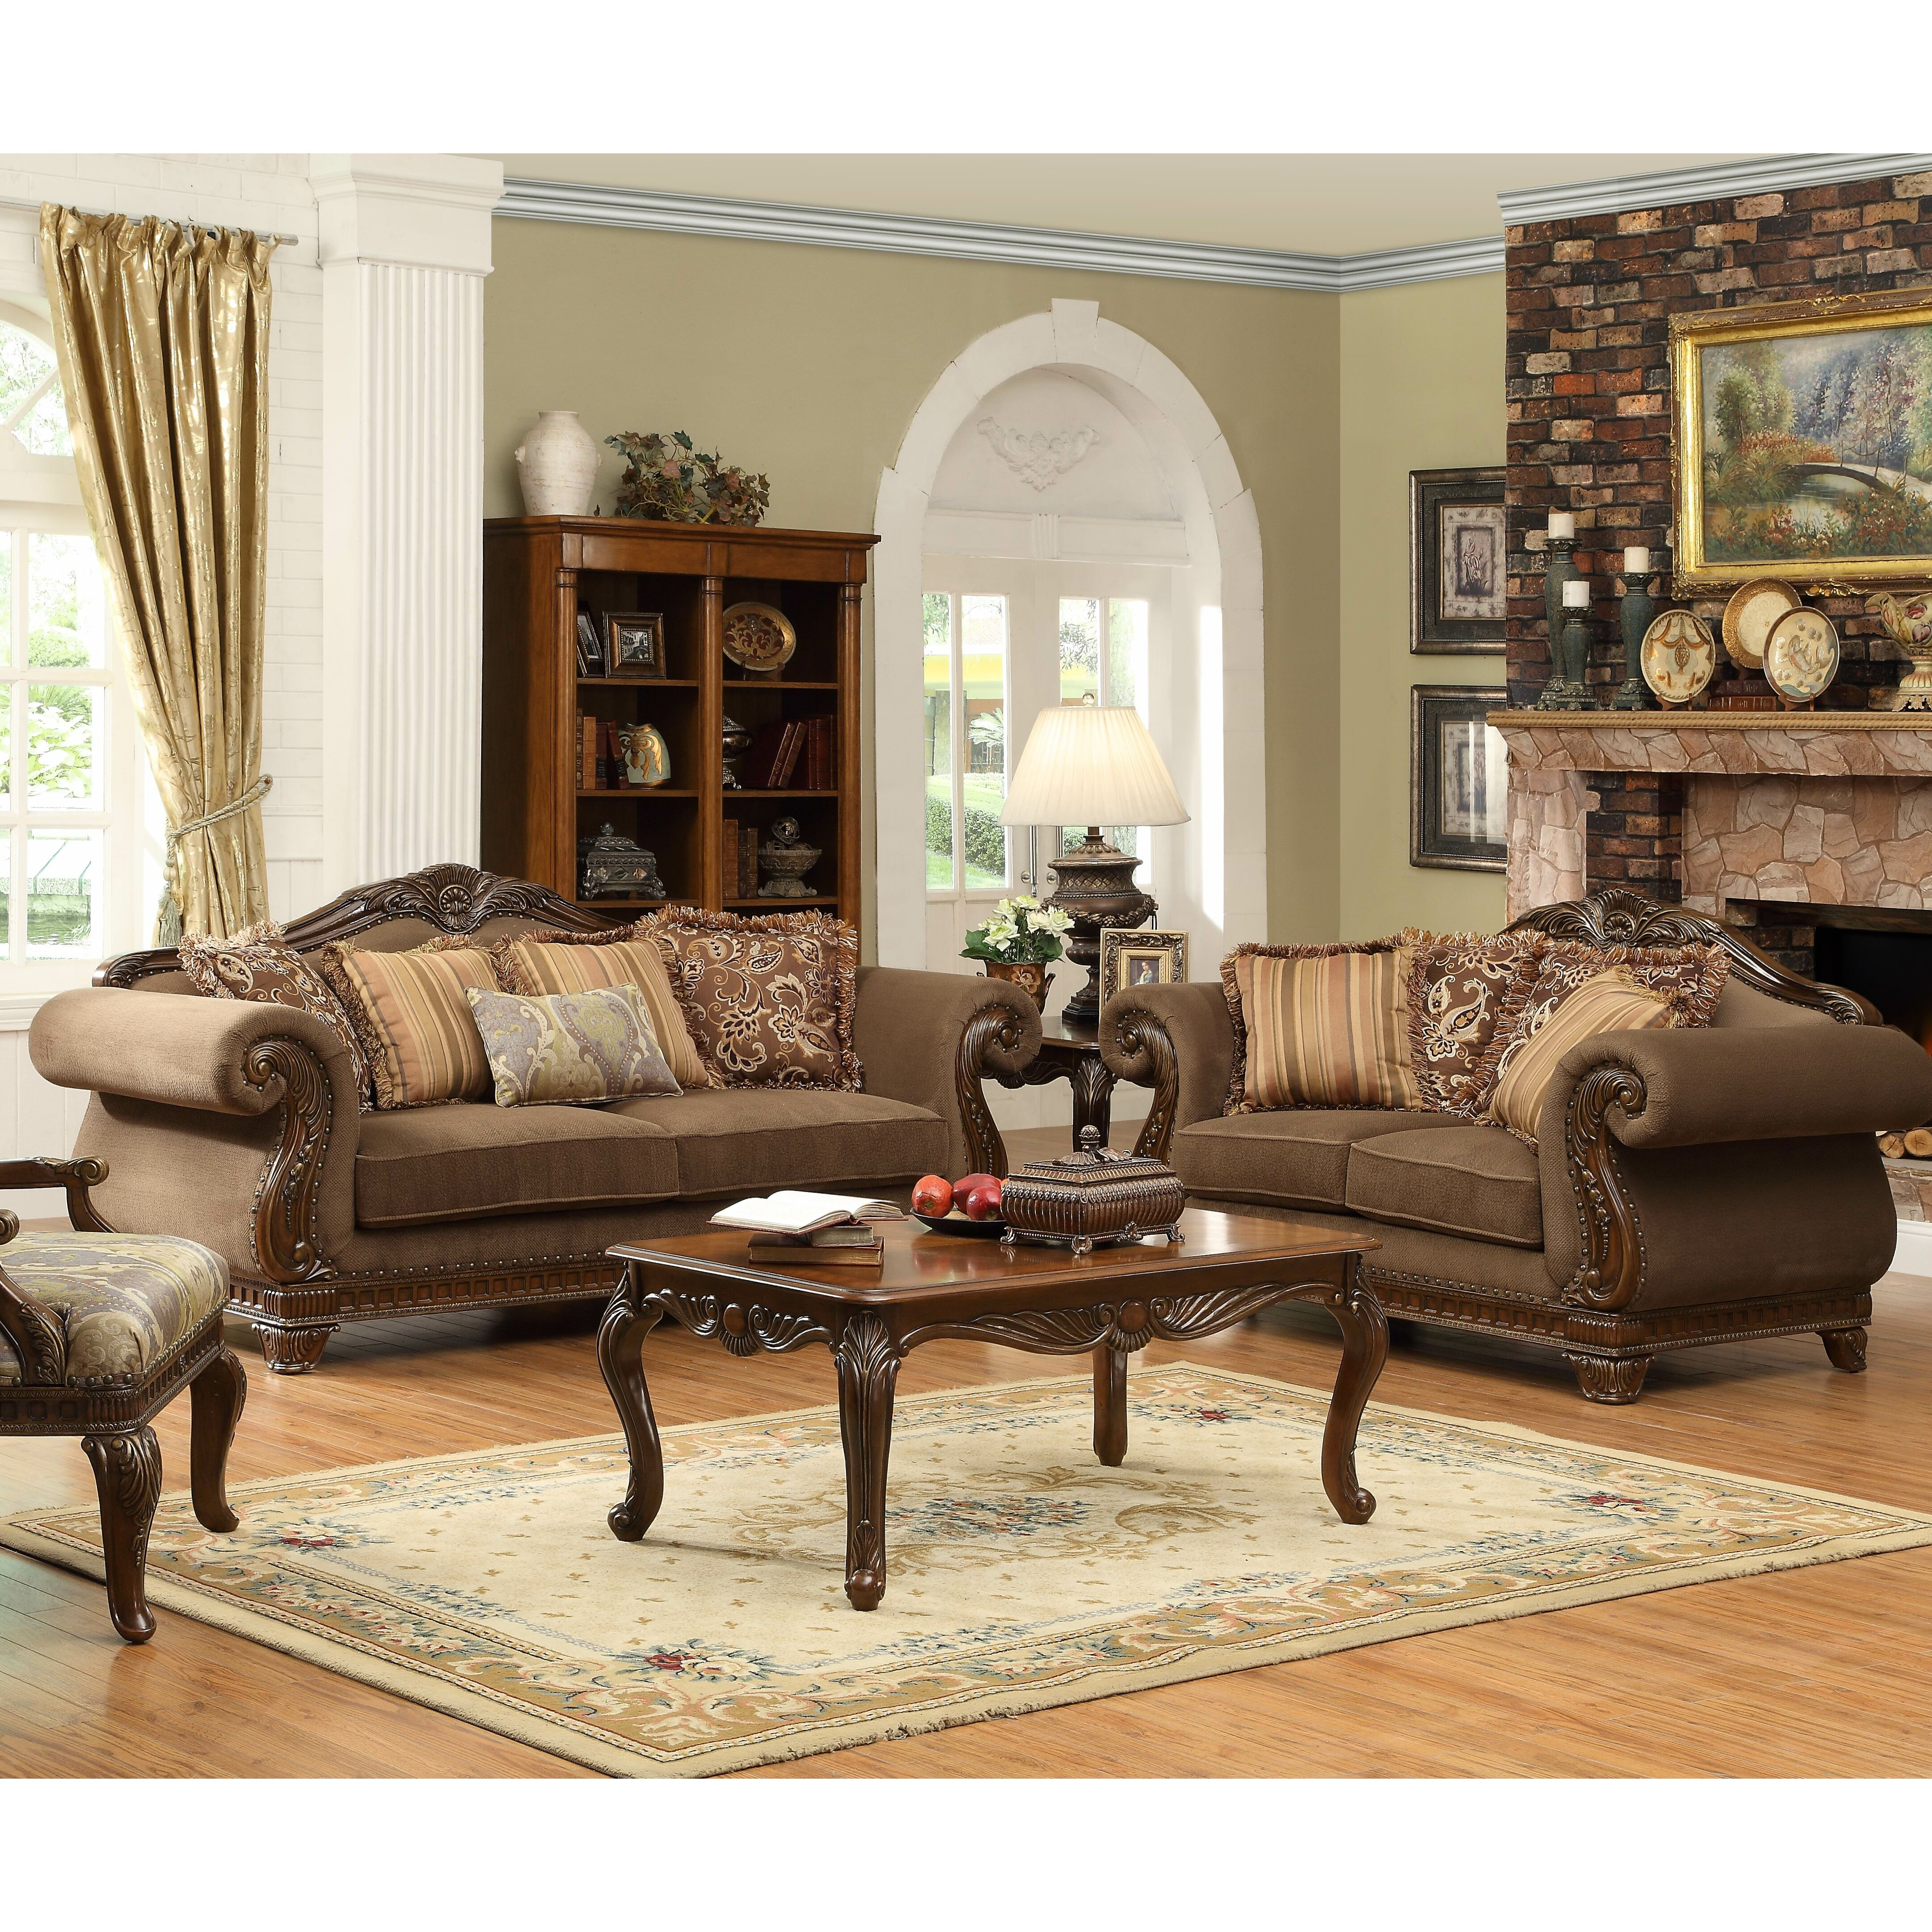 Living Room Collection Furniture Astoria Grand Shaldon Living Room Collection Reviews Wayfair